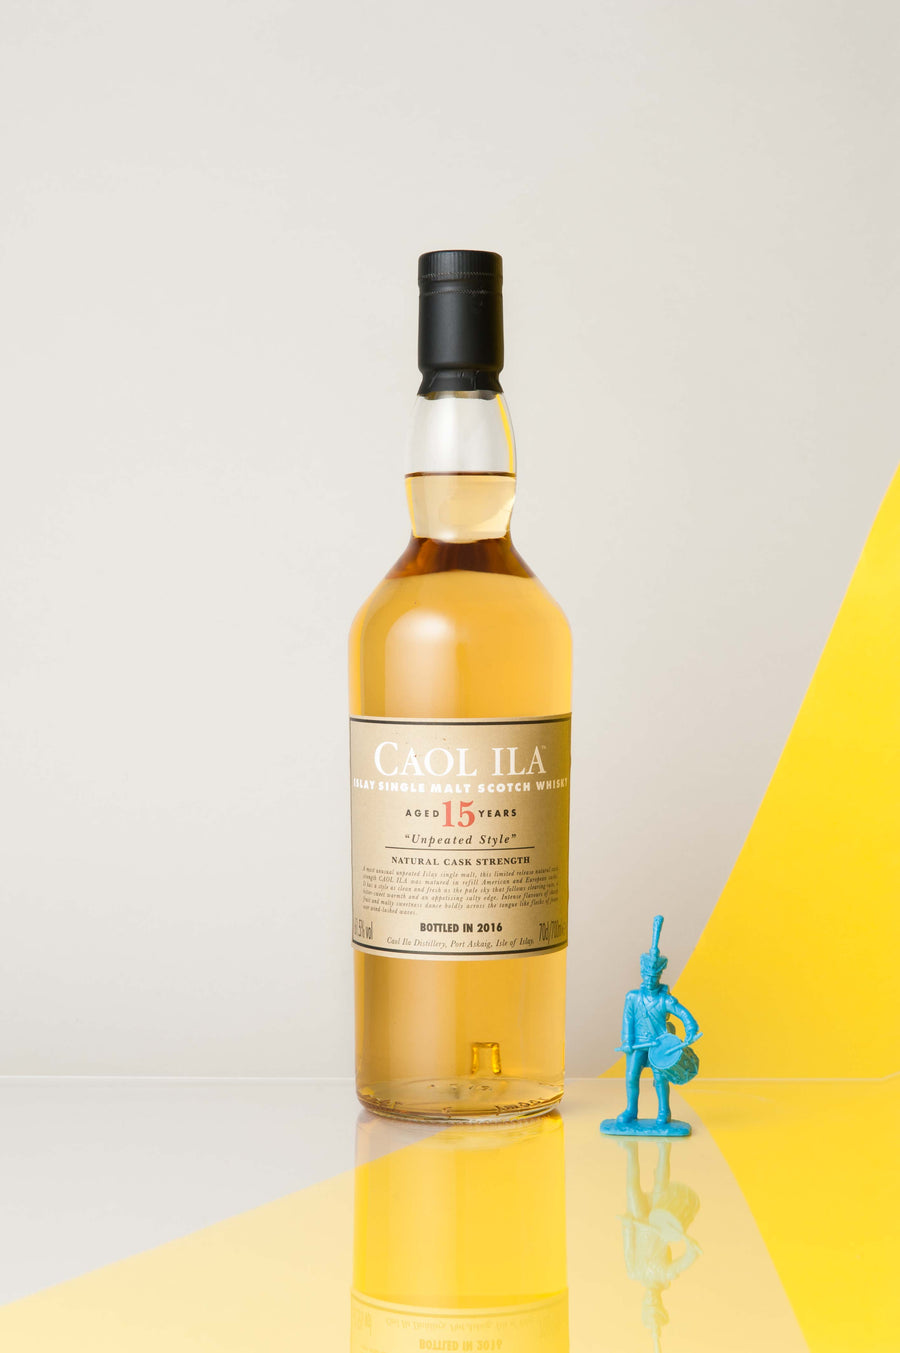 Caol Ila 15 Years Old Unpeated Style Single Malt Whisky